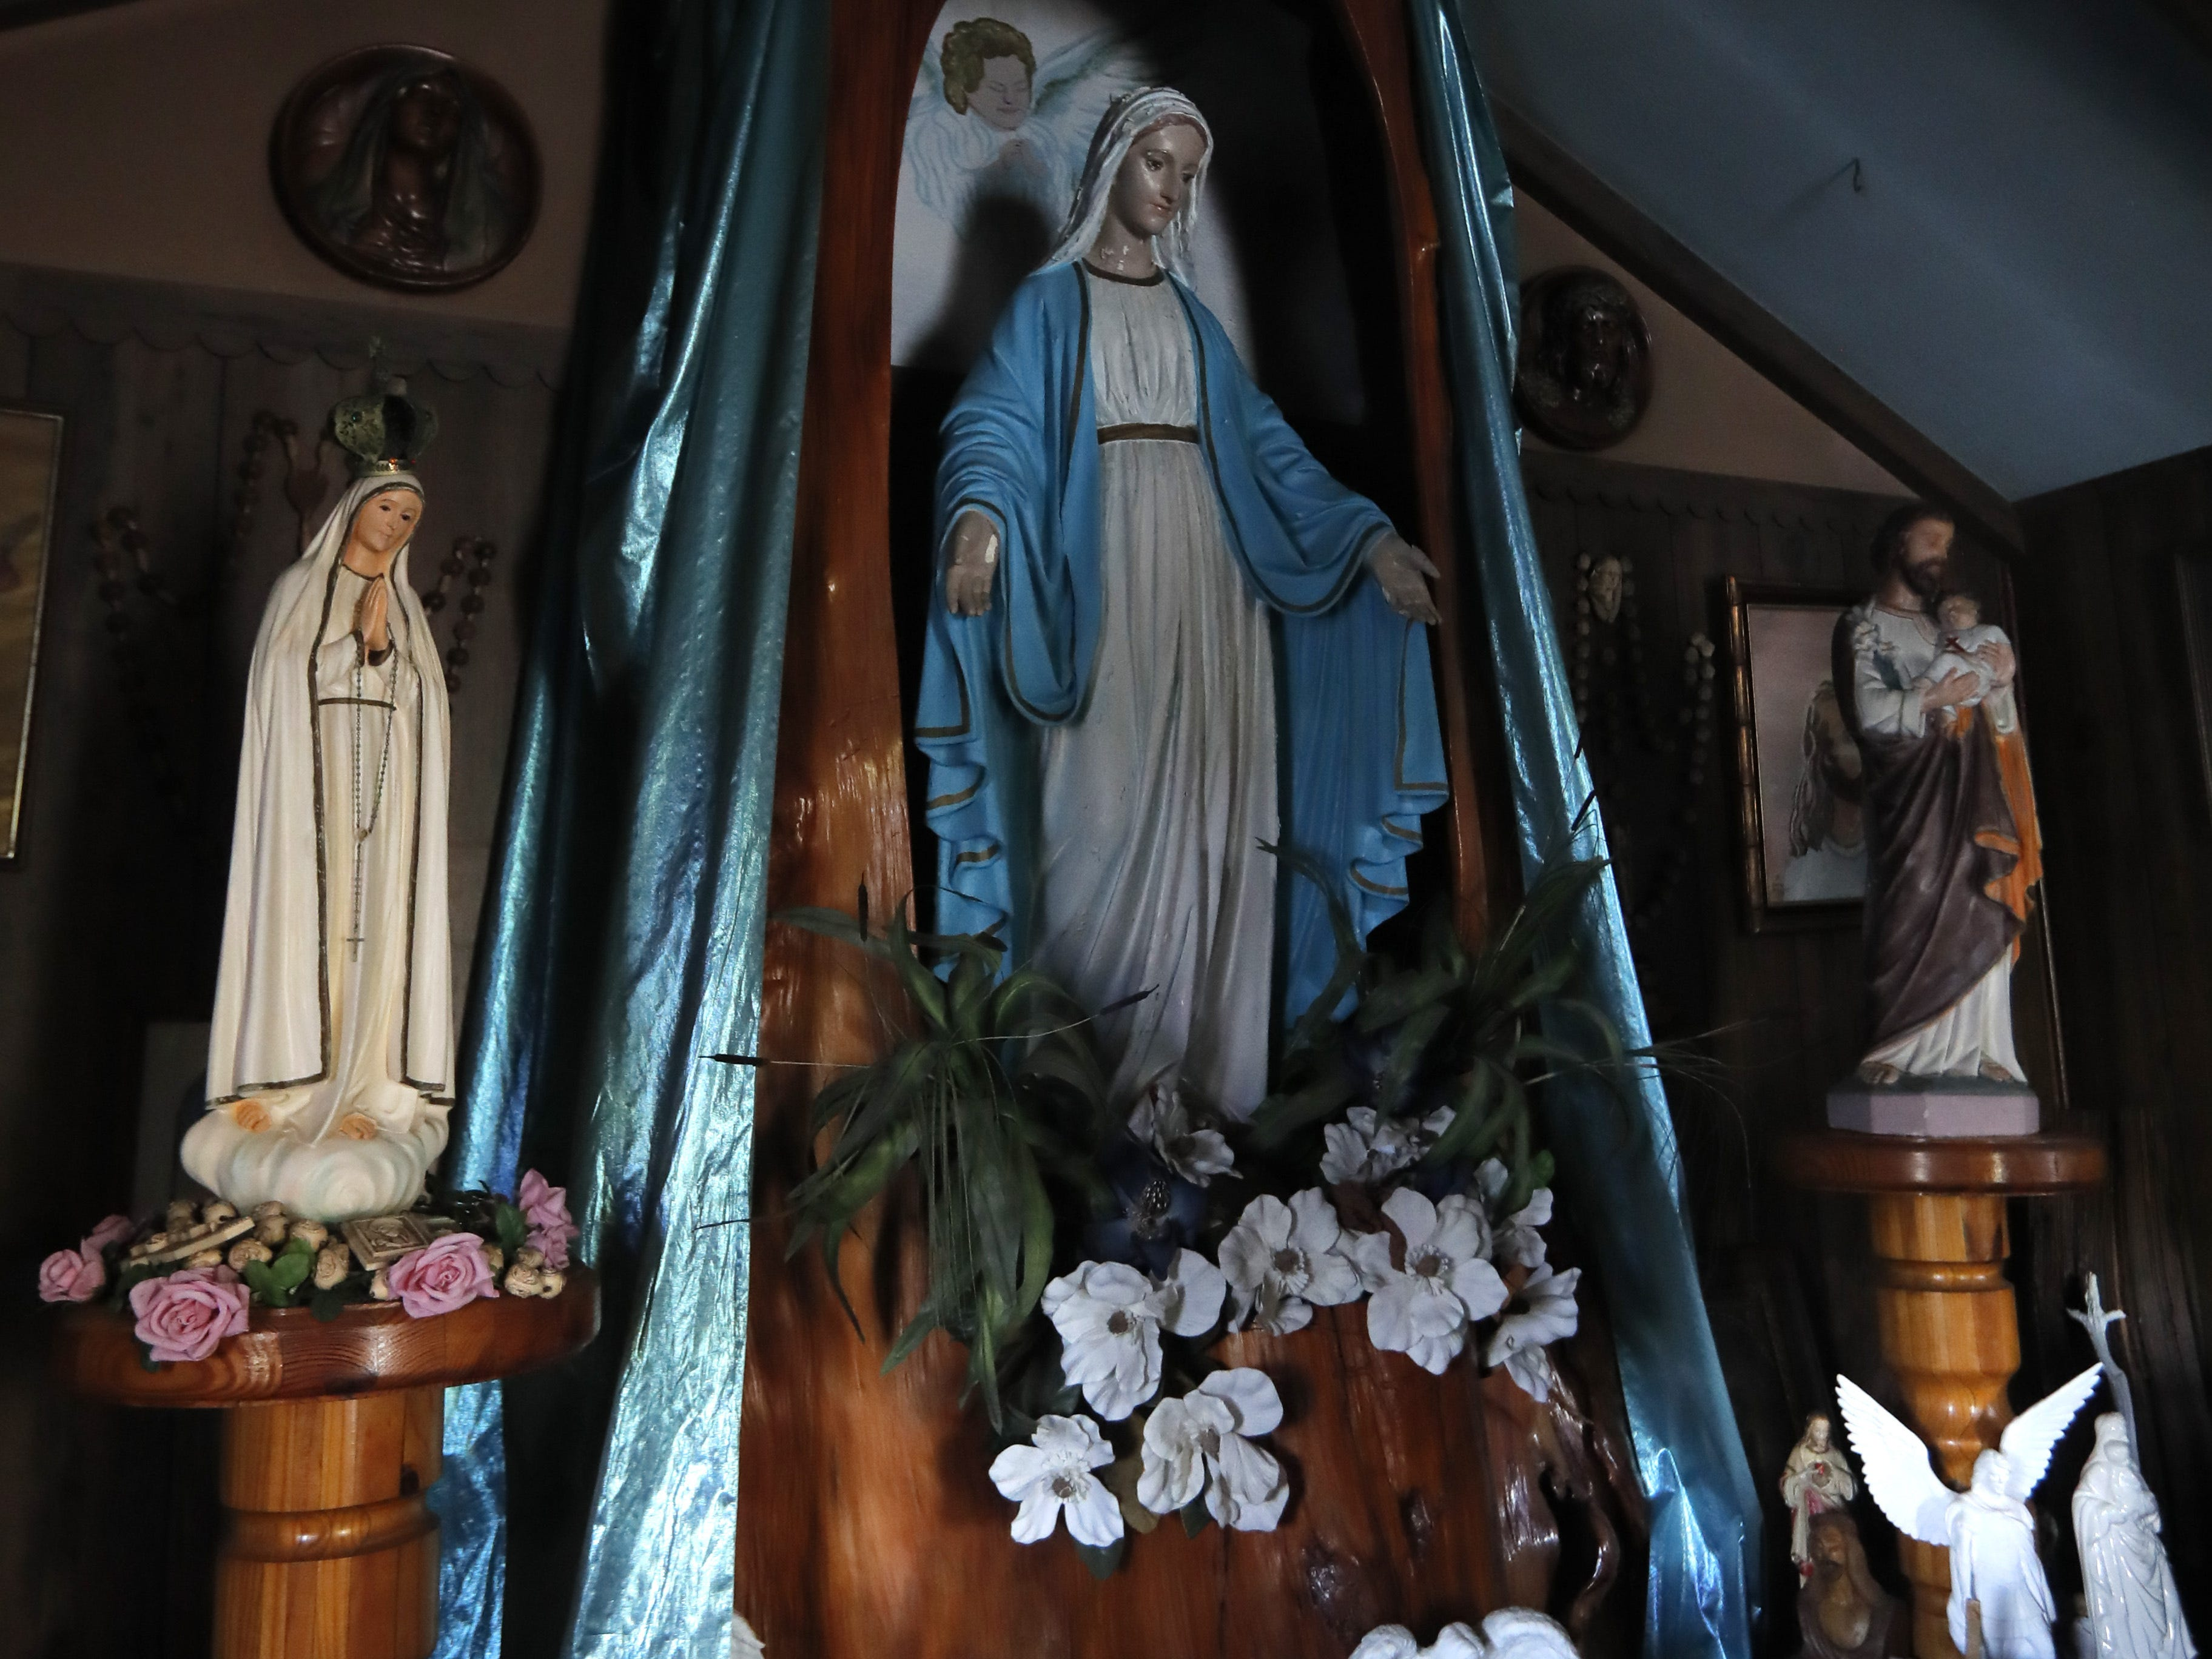 A statue of the Virgin Mary sits inside a carved cypress stump inside Our Lady of Blind River Chapel in St. James Parish, La., Tuesday, April 9, 2019. The chapel was built decades ago by Martha Deroche and her husband Bobby, after Martha had a vision of Jesus kneeling by a rock. Over the years, people have stopped by in boats or kayaks to pray in the one-room chapel. But floods over the years have damaged the little church, and the couple's grandson Lance Weber had to close it about two years ago out of safety concerns. (AP Photo/Gerald Herbert)